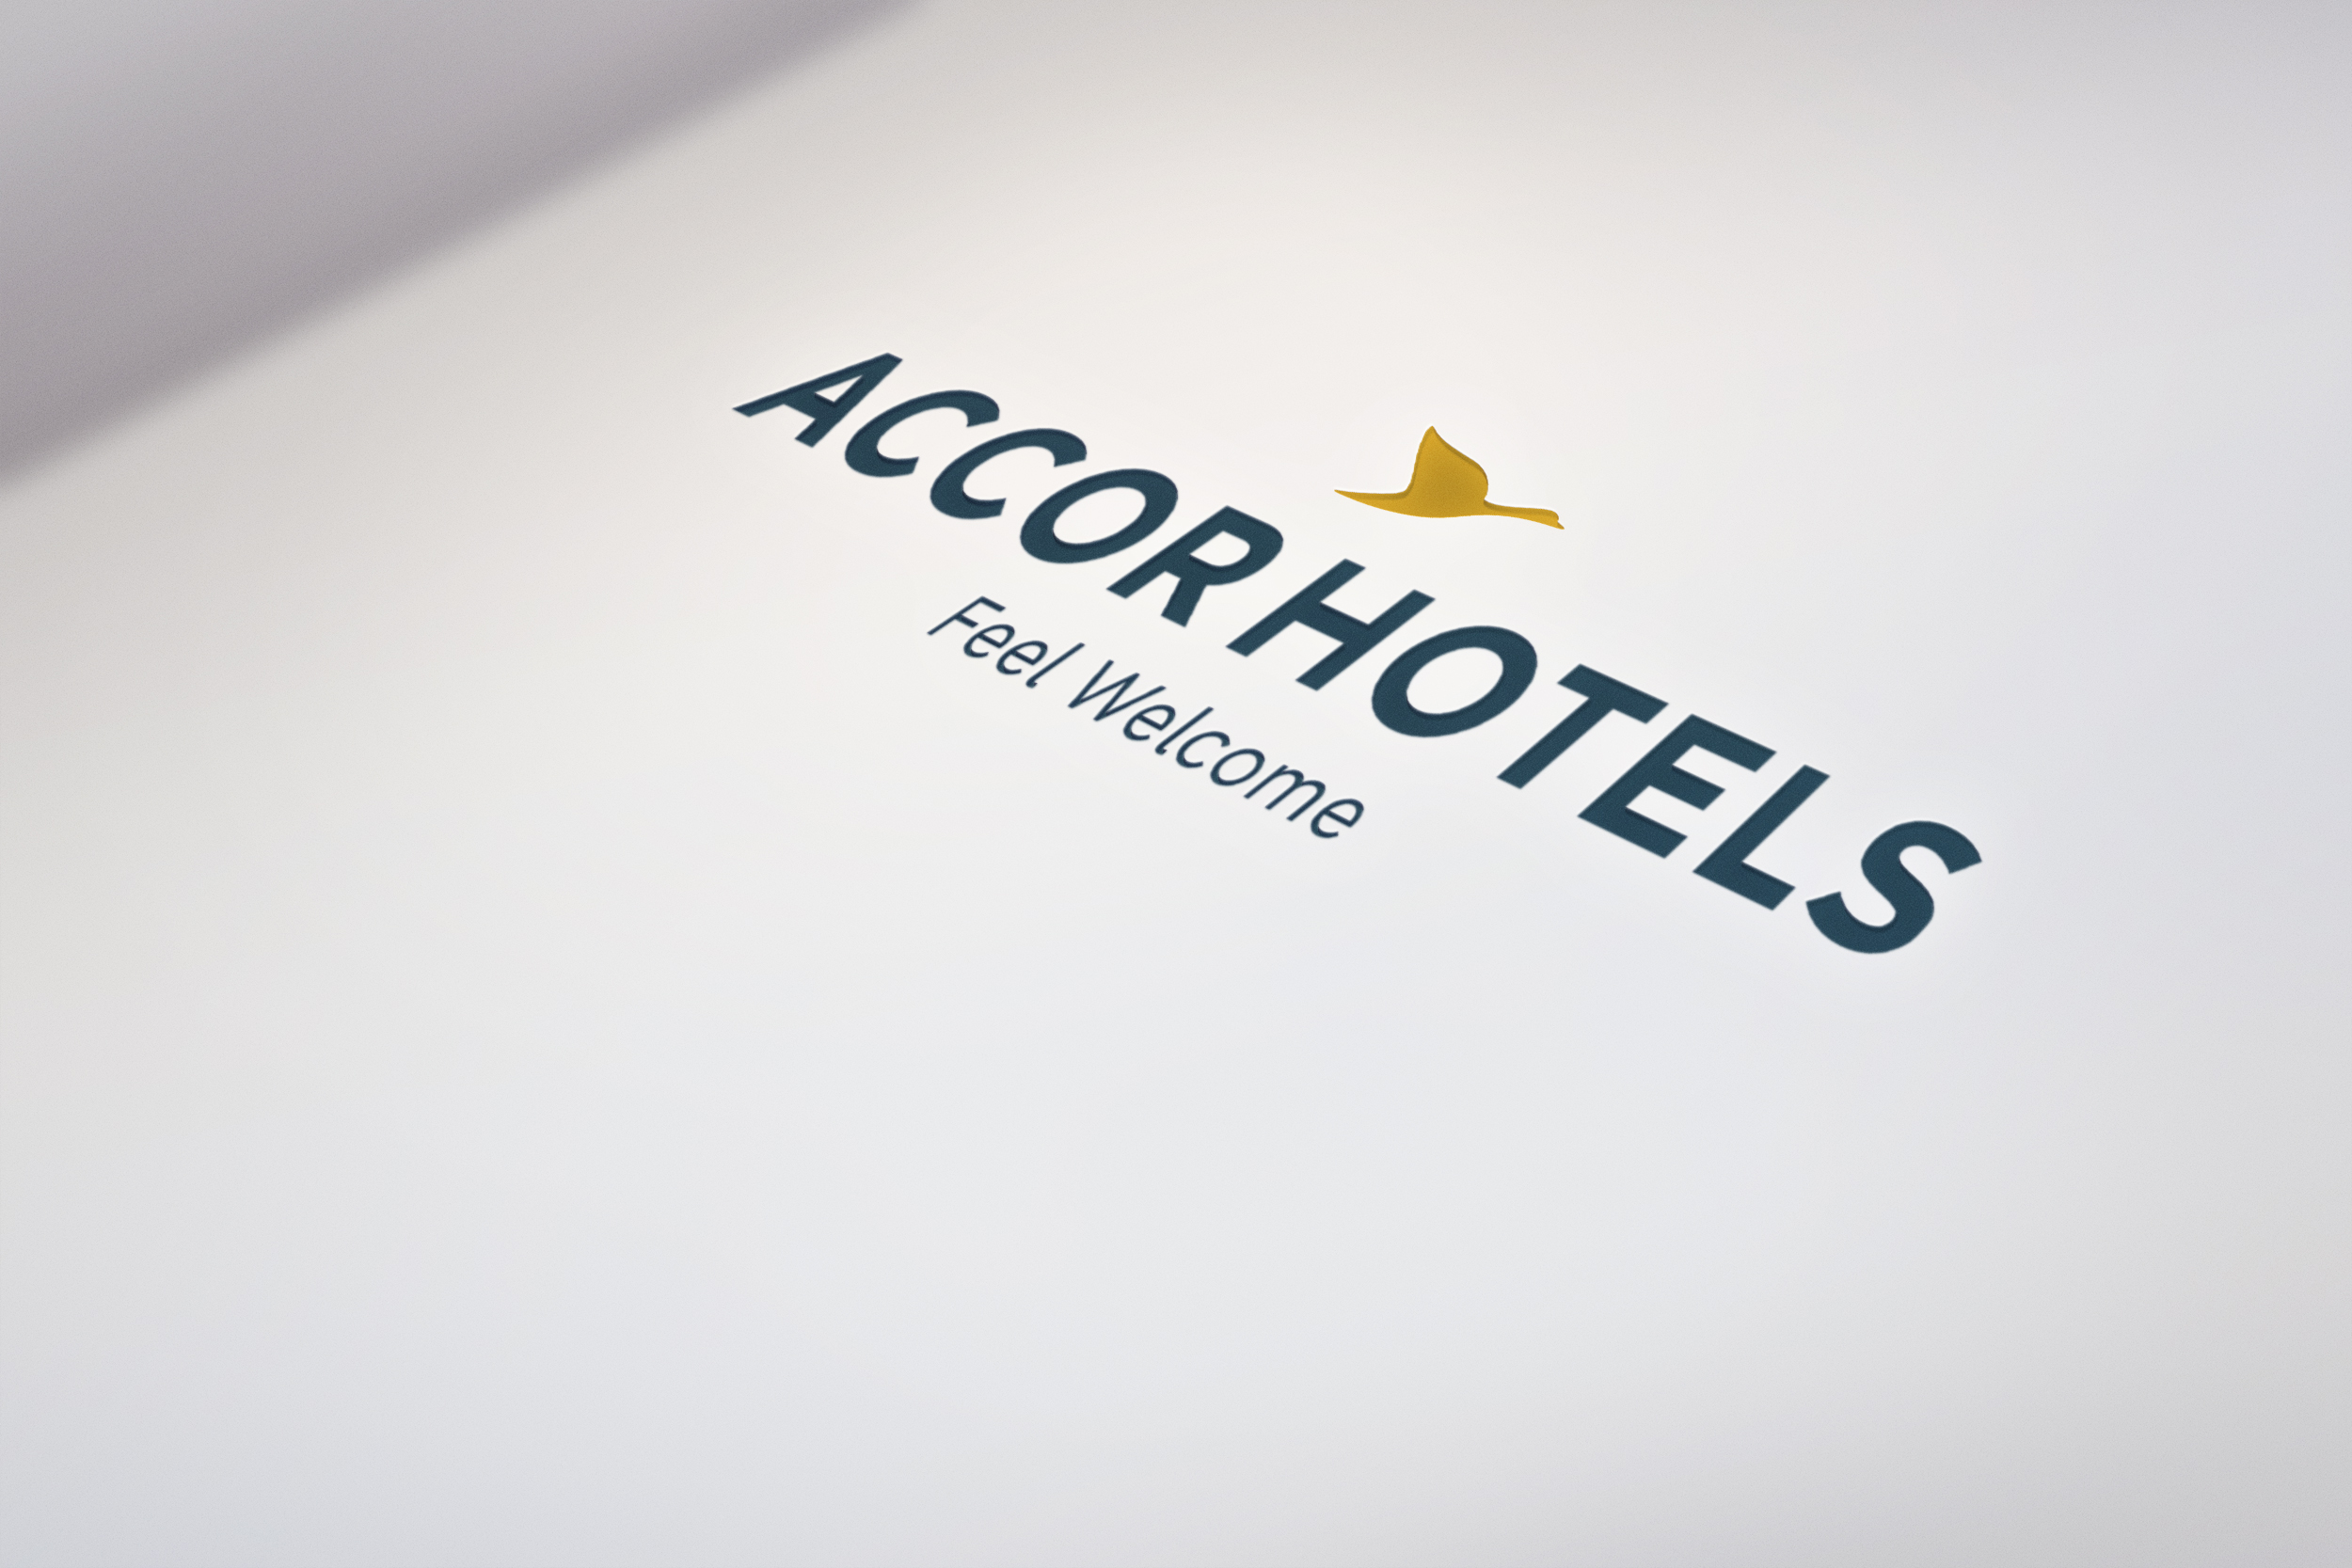 accor hotels essay Analysis of accor's operating environment 4 industry analysis using porter's five forces 4 read more this entry was posted in marketing and tagged accor group of hotels , csr initiatives , planet 21 initiative , porter's five forces on march 13, 2013 by admin.